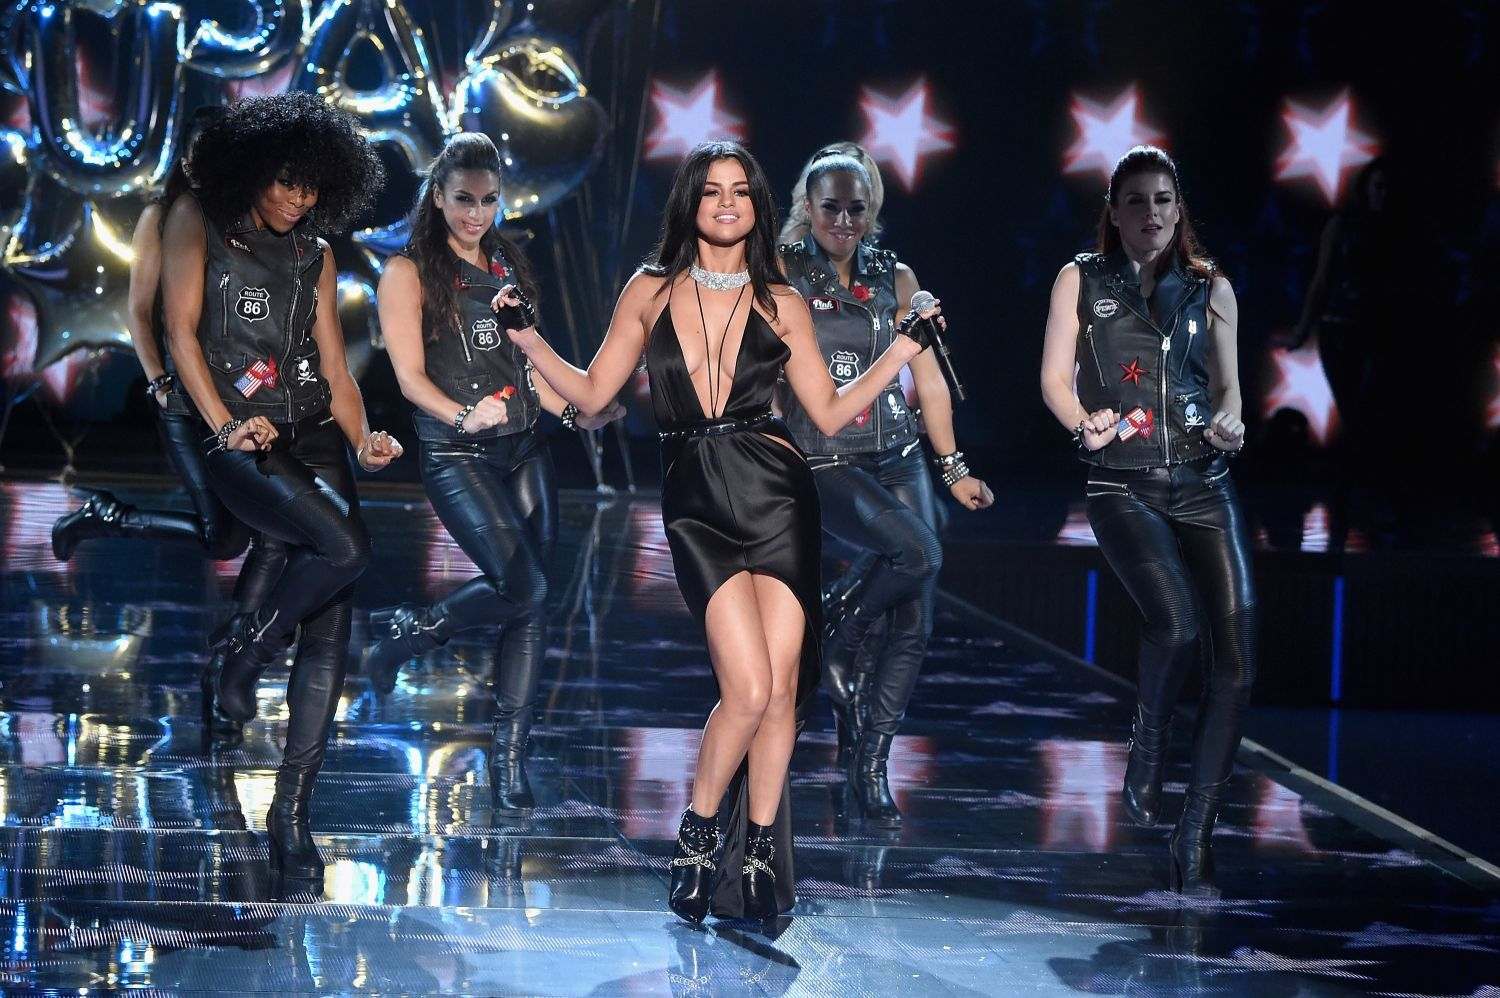 Selena Gomez dances during her VS Fashion Show performance